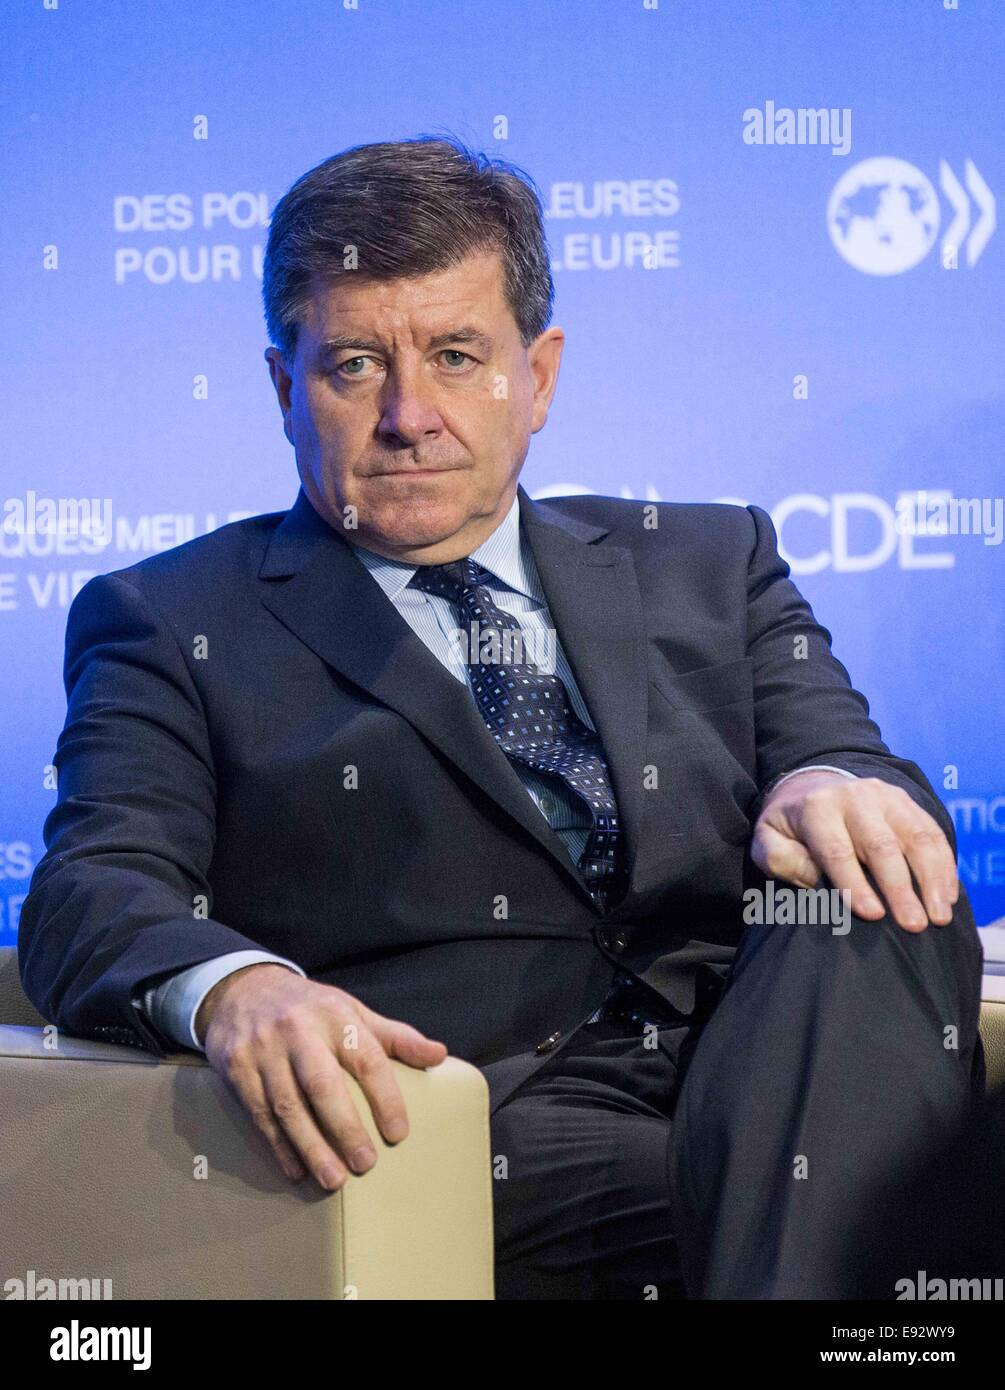 Paris. 17th Oct, 2014. International Labor Organization (ILO) Director General Guy Ryder attends a press conference - Stock Image